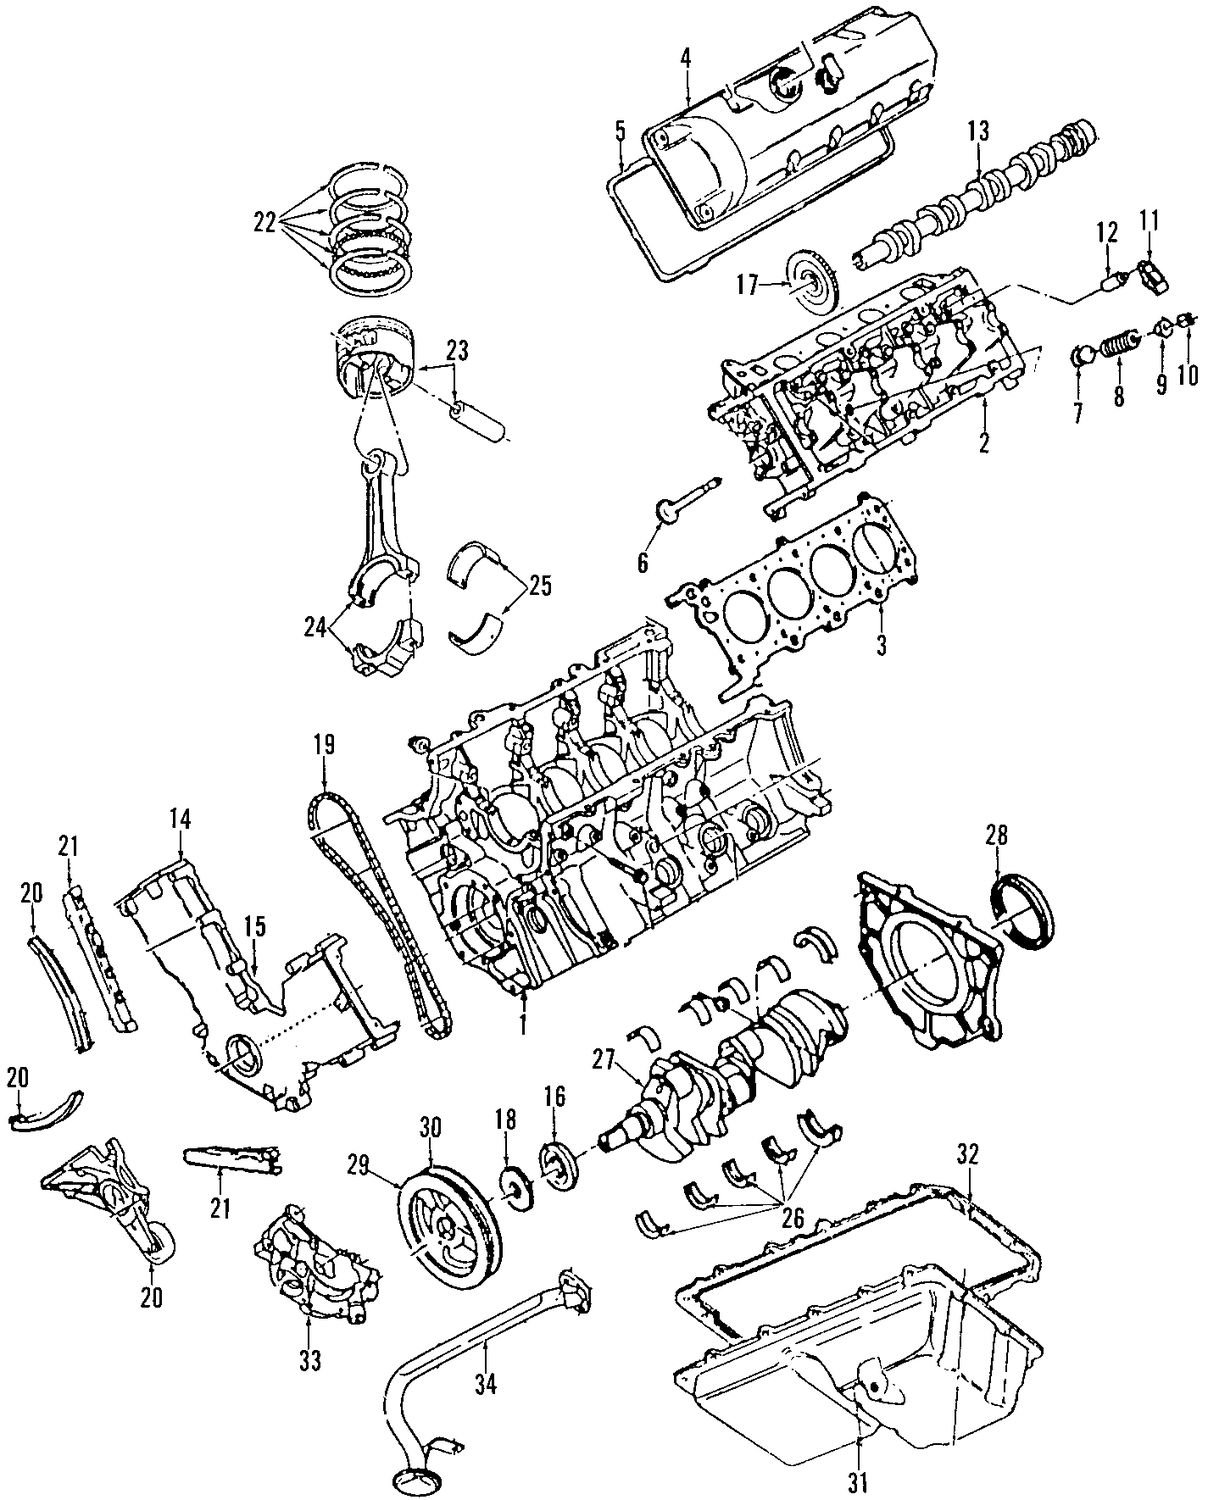 302 engine diagram 20 piston best wiring library 1949 GMC FC Engine genuine ford piston for 8r3z6108a